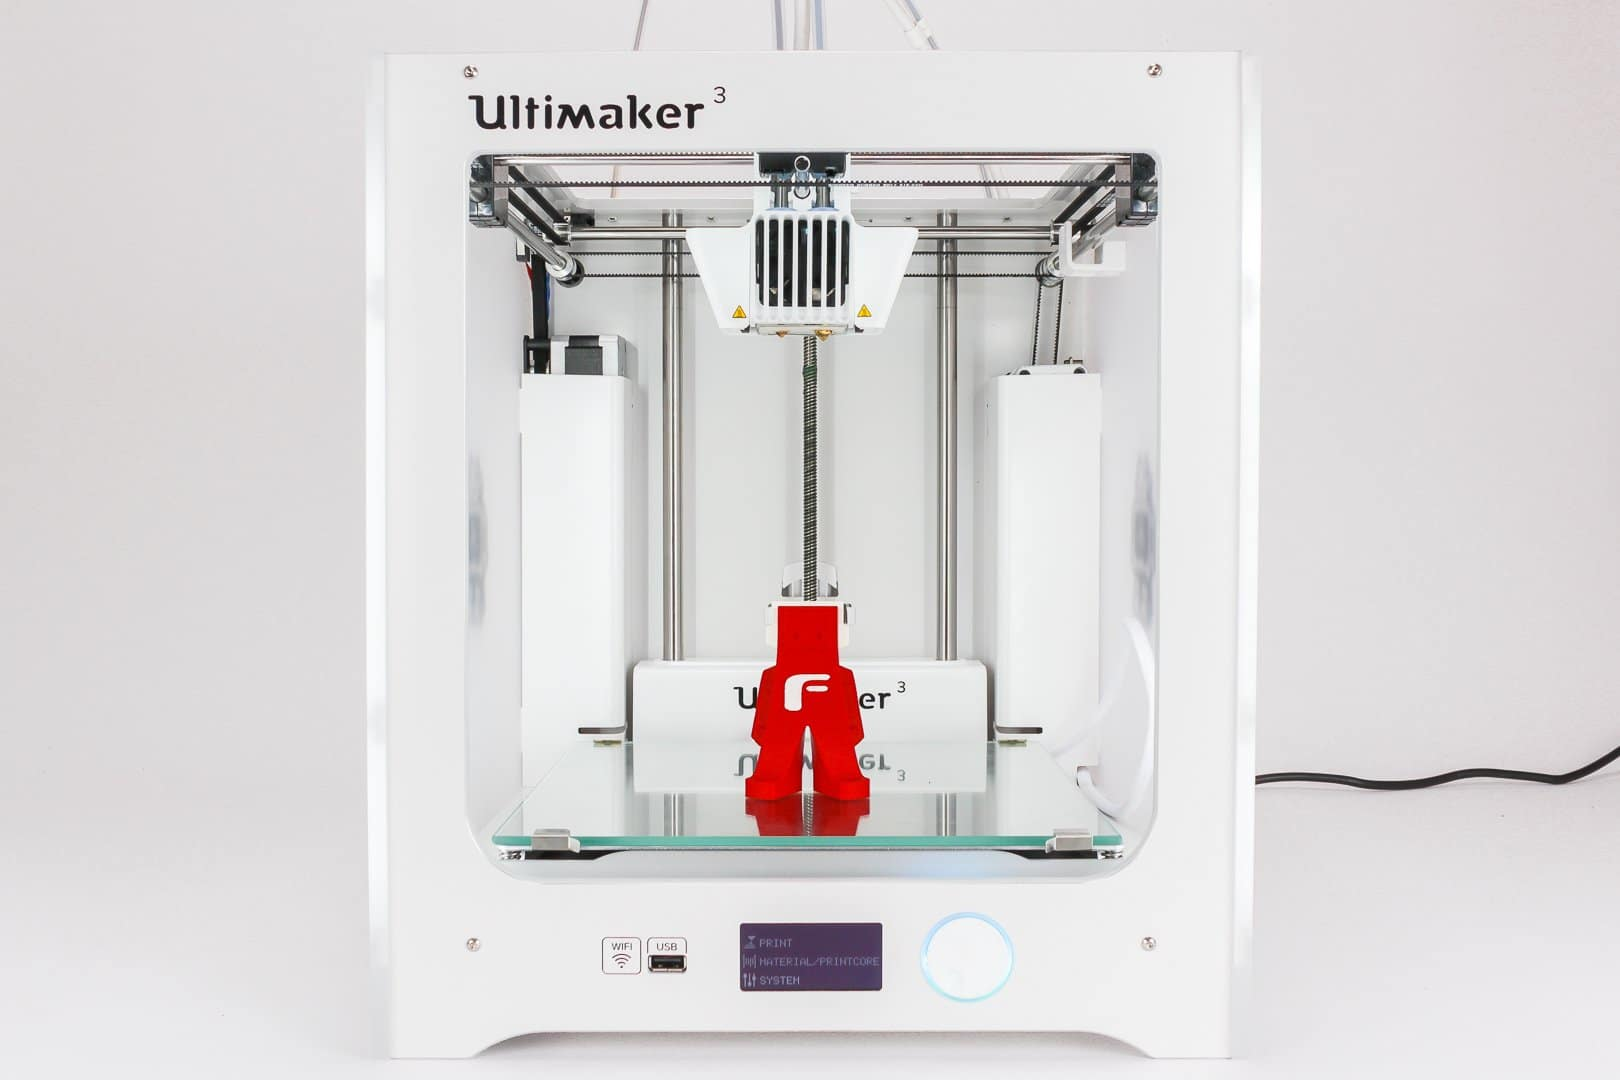 Ultimaker Marketplace Formfutura